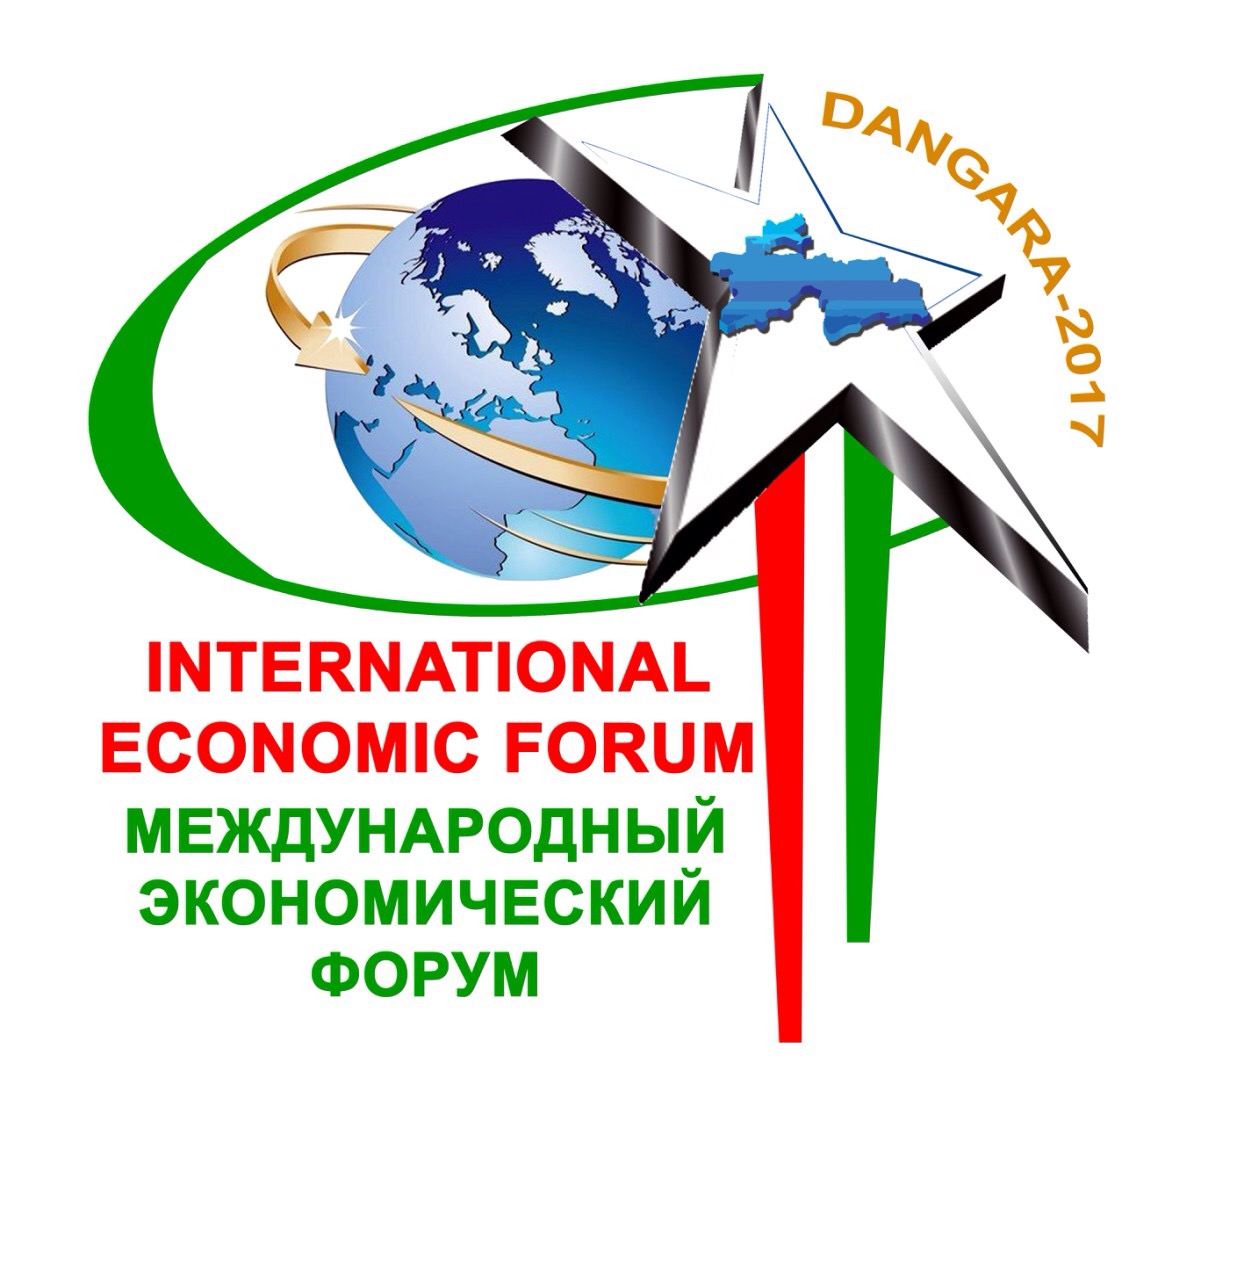 International Economic Forum